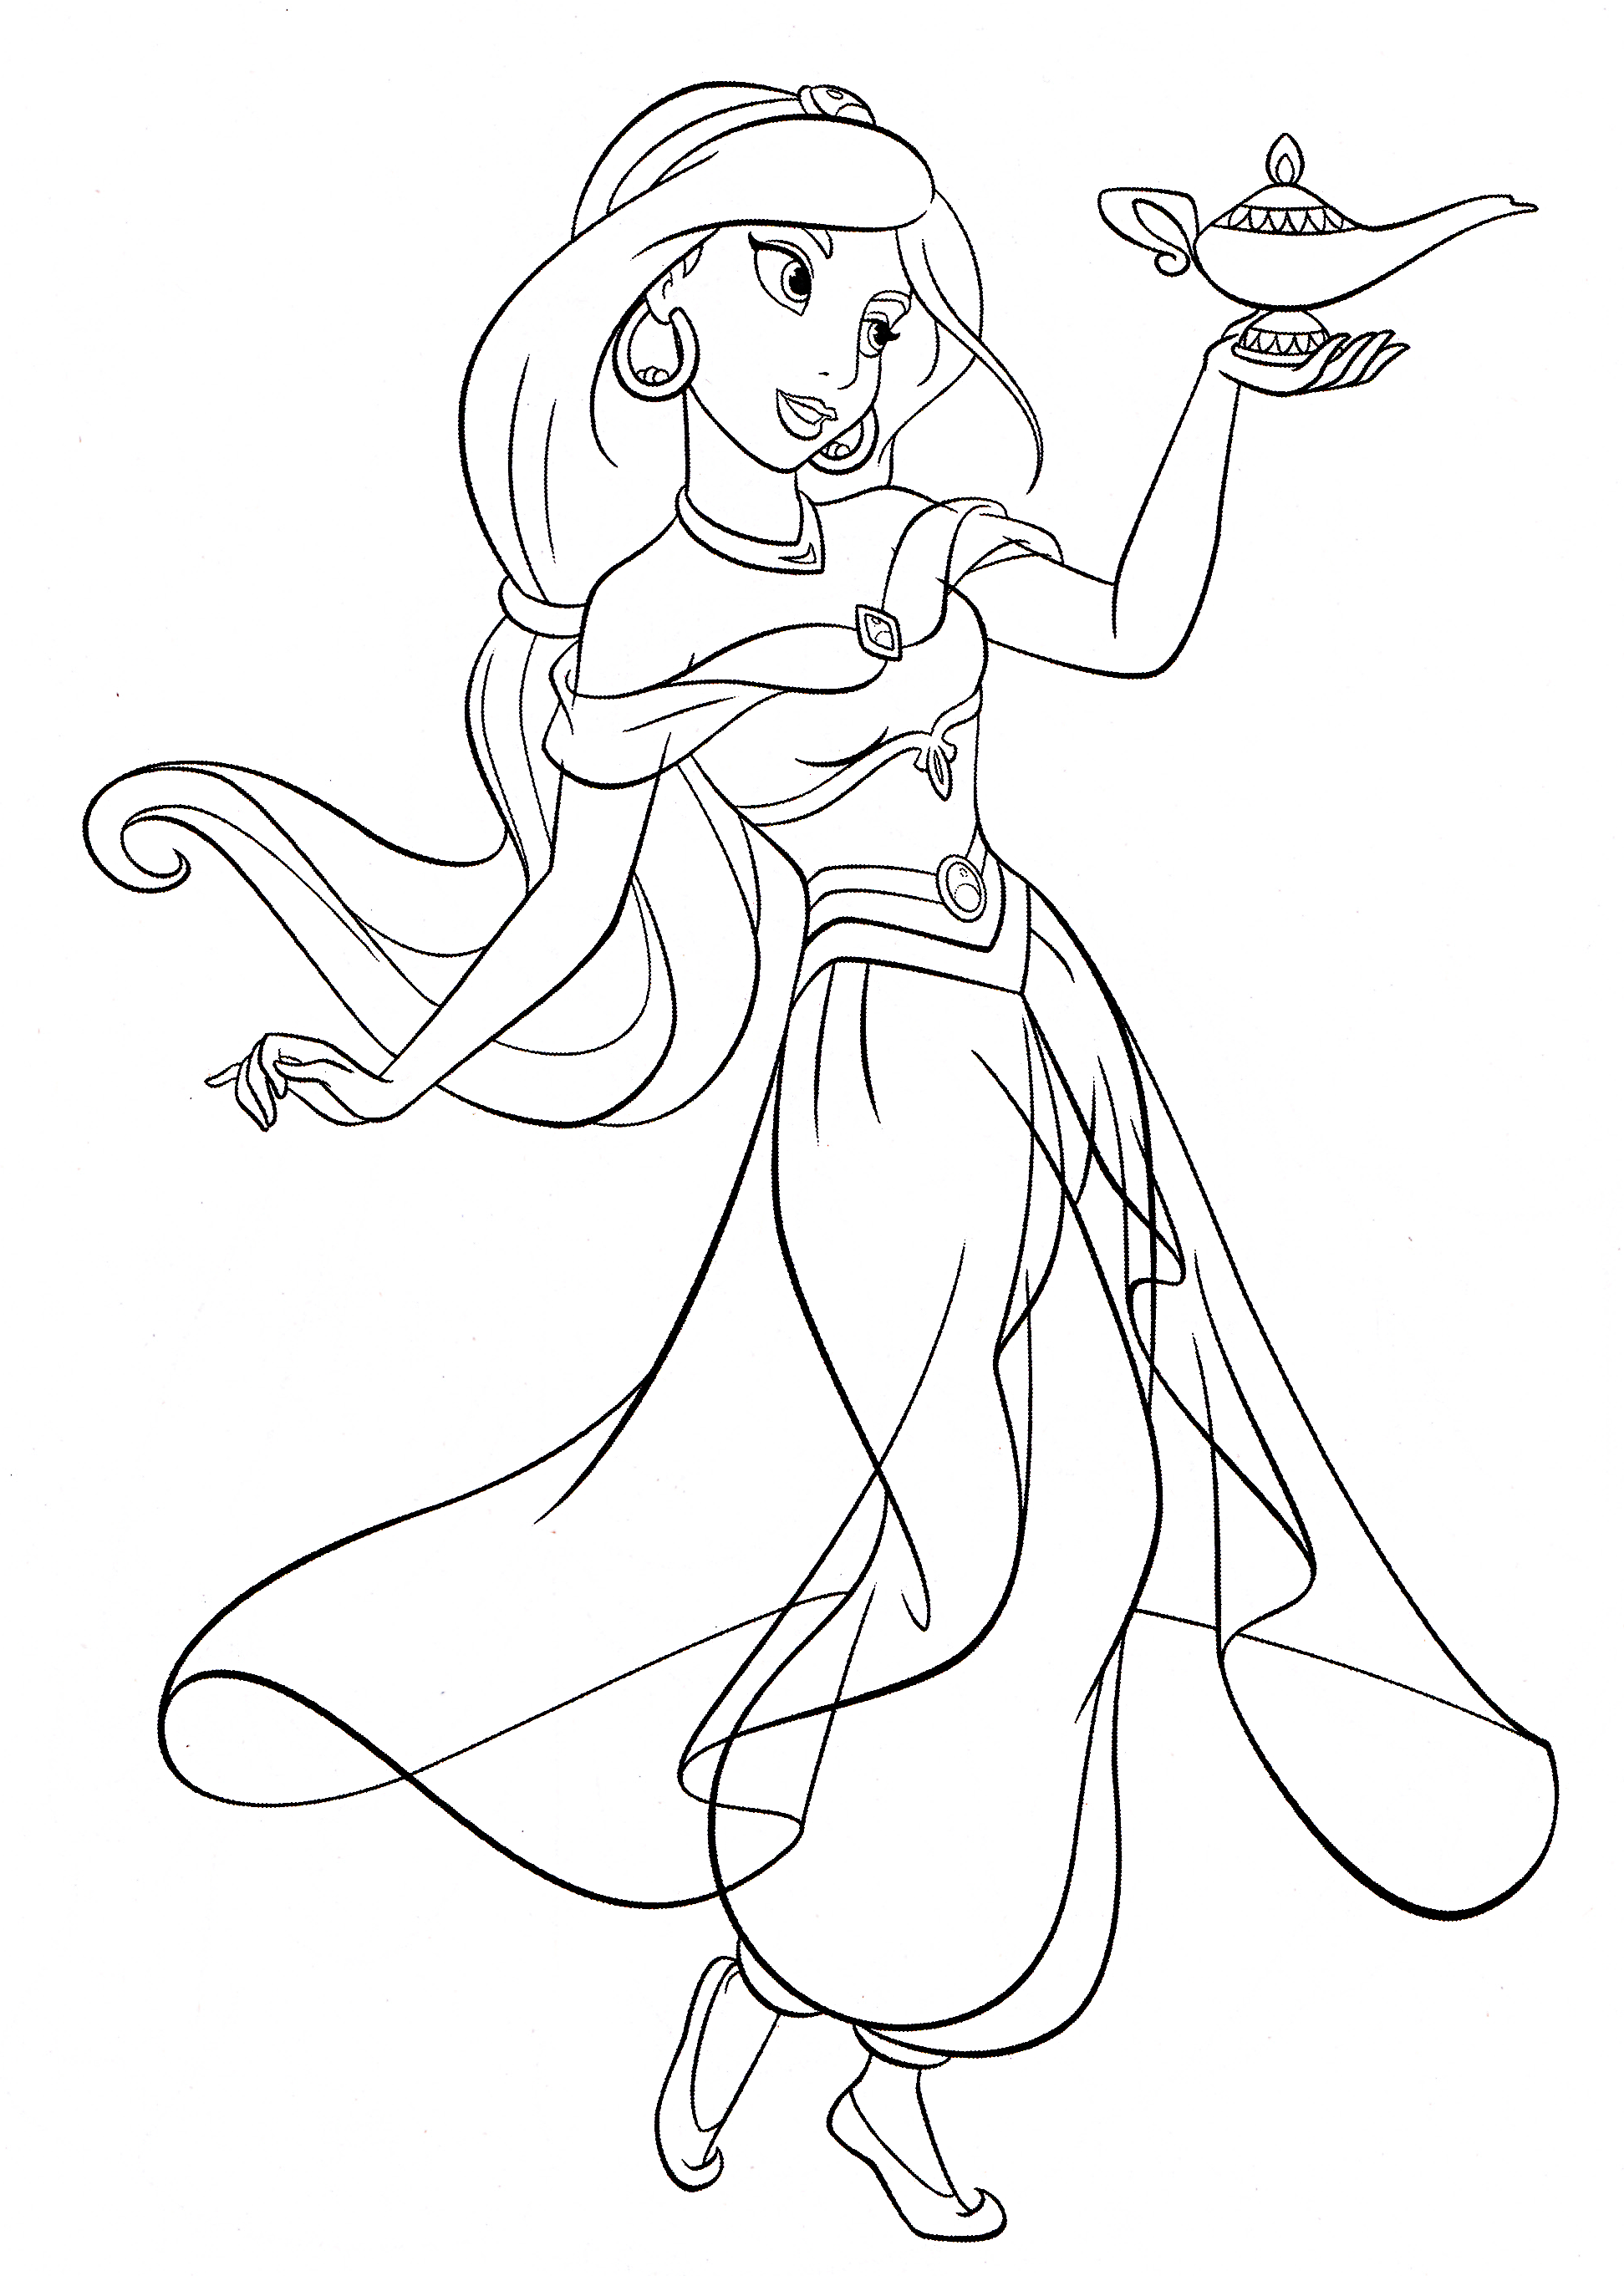 jasmine coloring pages to print - photo#10